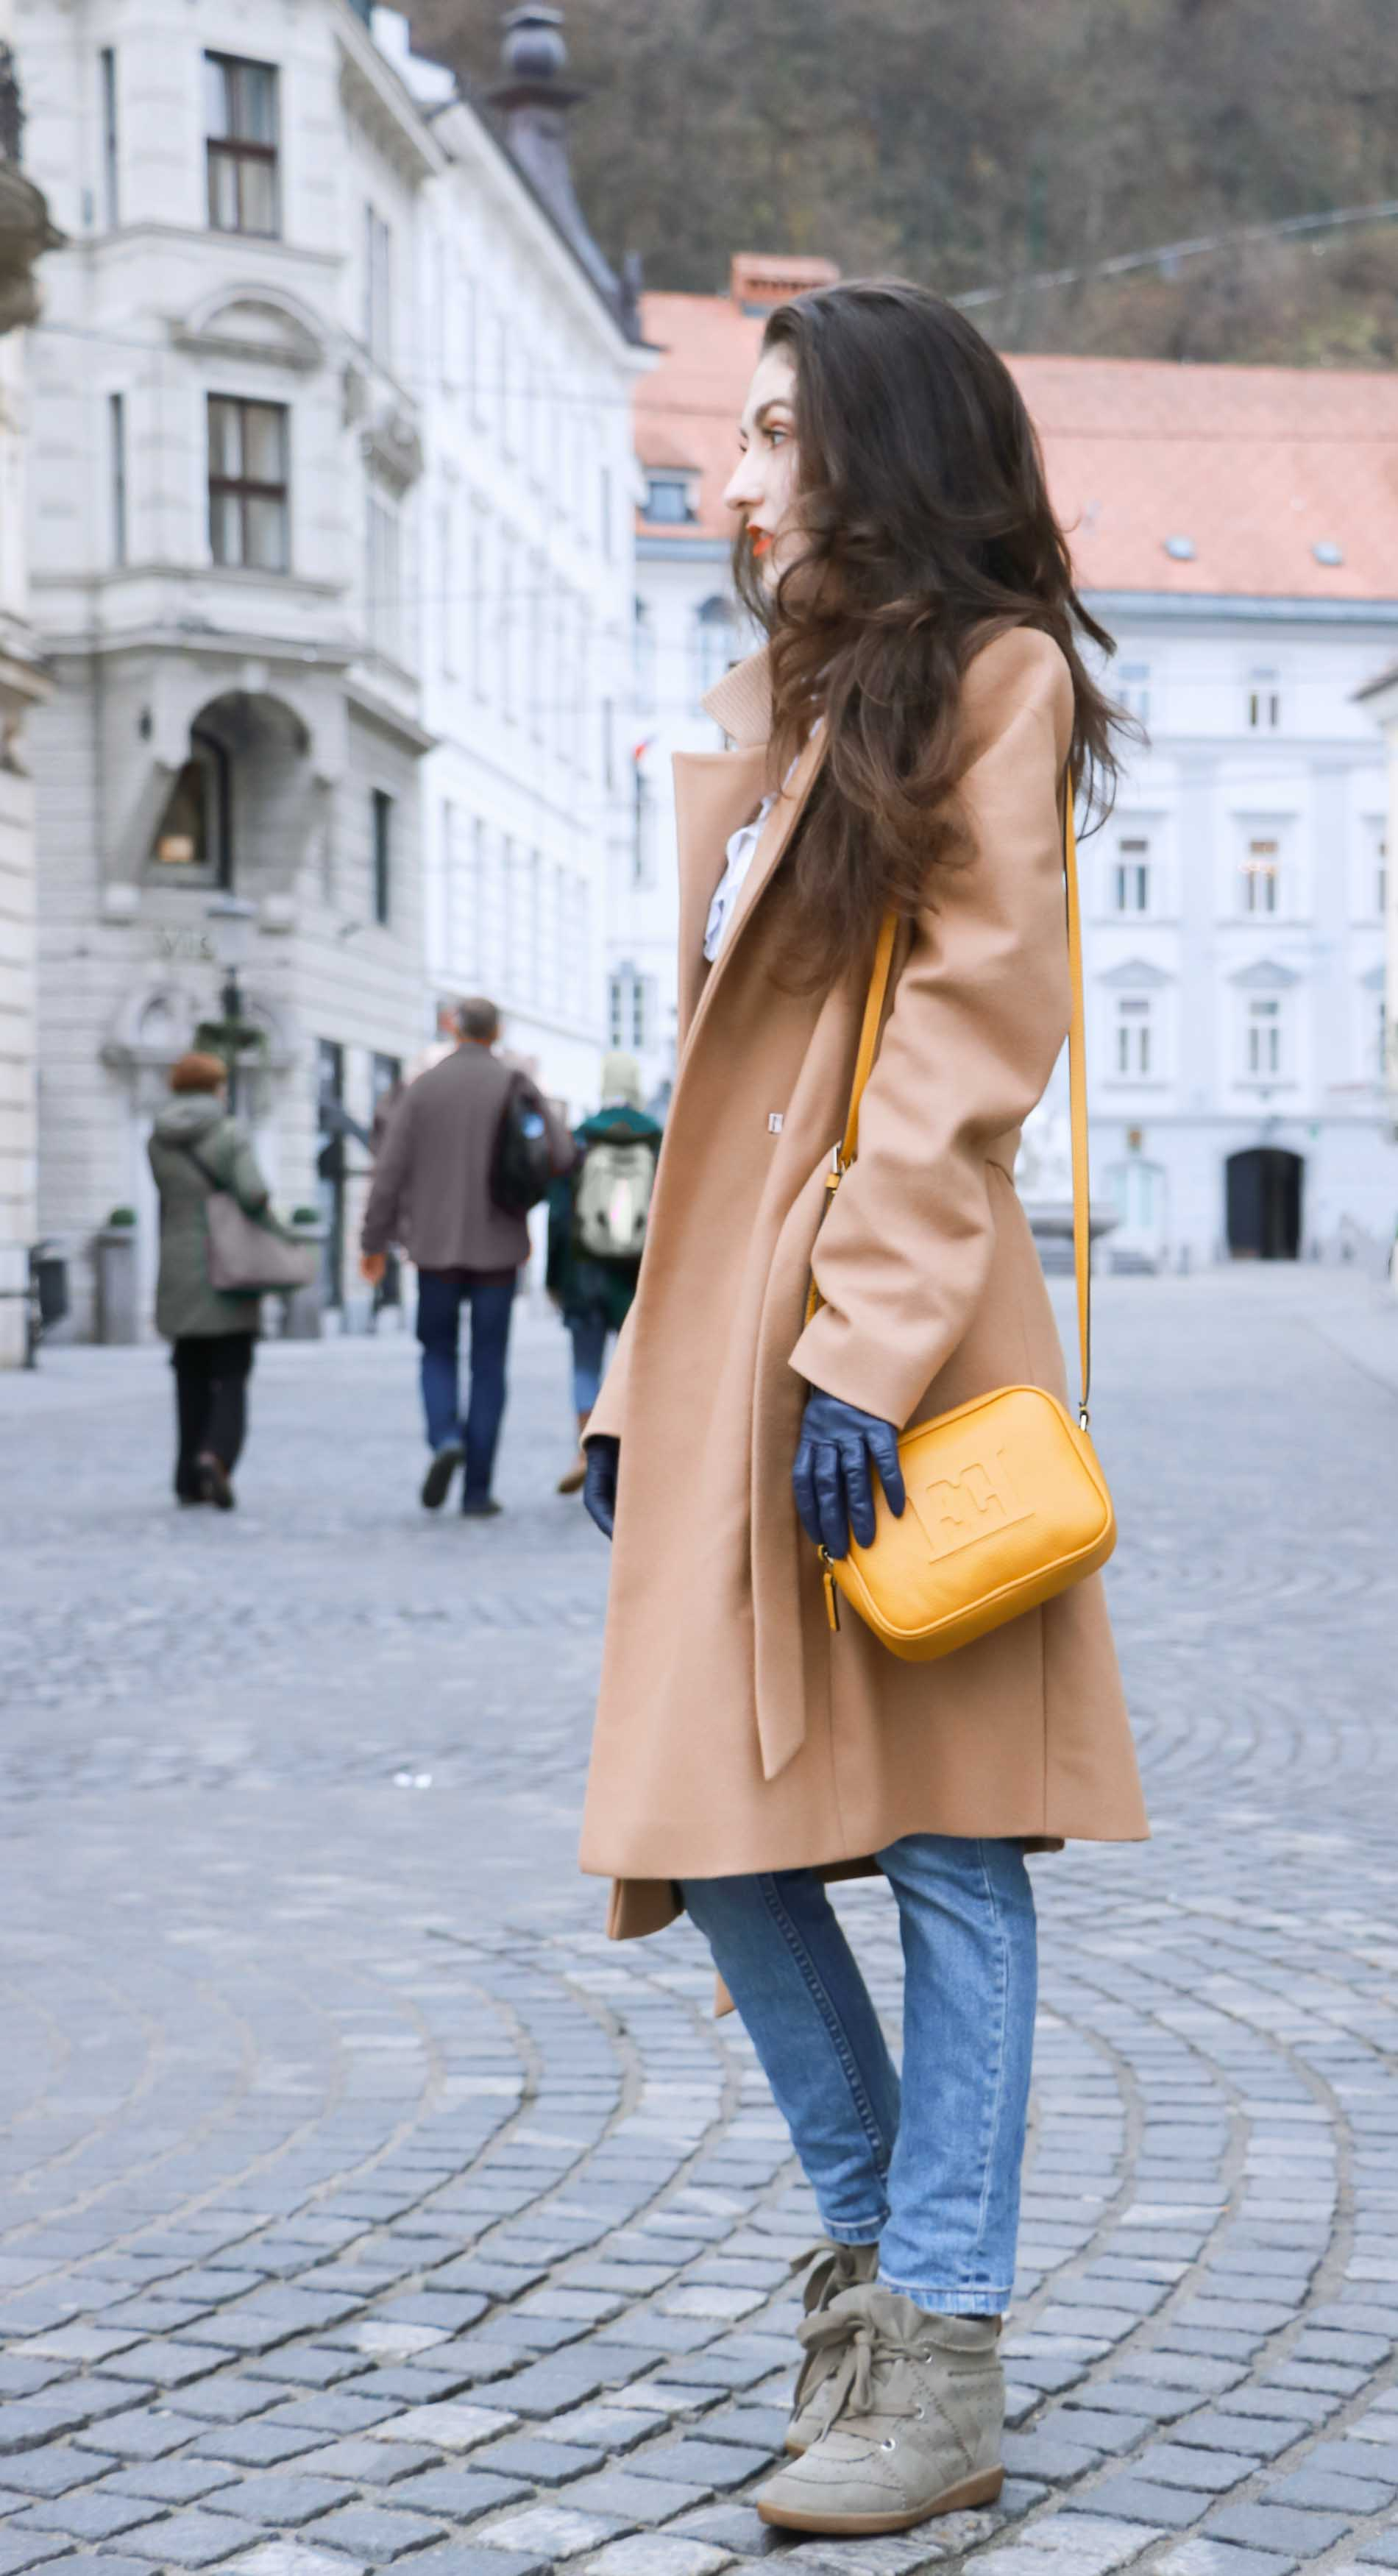 Fashion Blogger Veronika Lipar of Brunette from Wall Street wearing off-duty outfit, ESCADA wrap camel coat, A.P.C. blue jeans, Isabel Marant olive Bobby Sneakers, yellow shoulder bag from Escada, white Victorian blouse